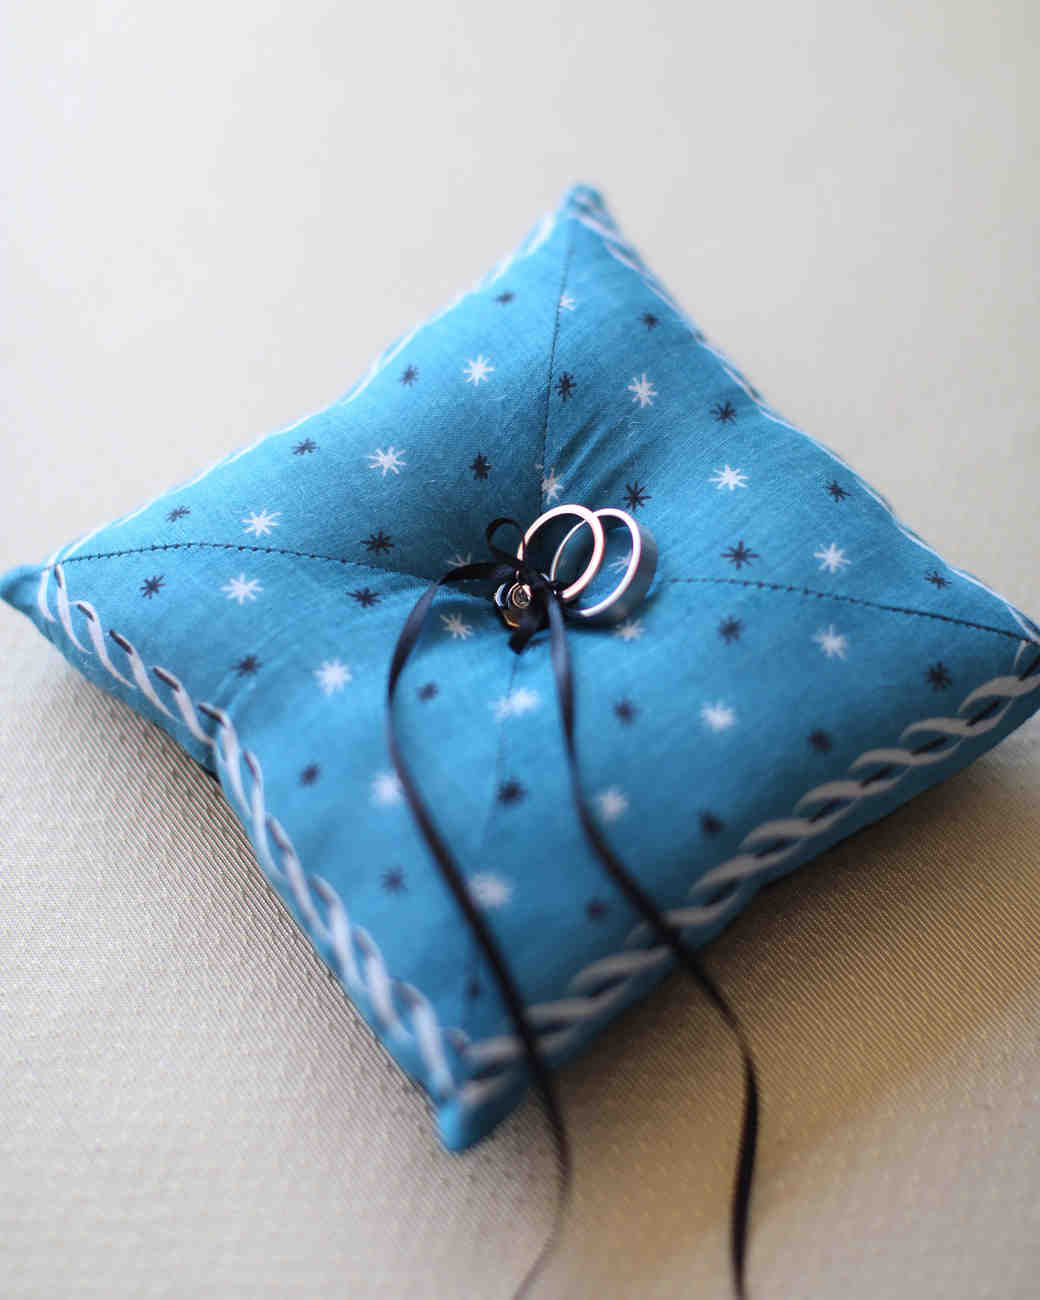 ring-pillow-002-wd109359.jpg